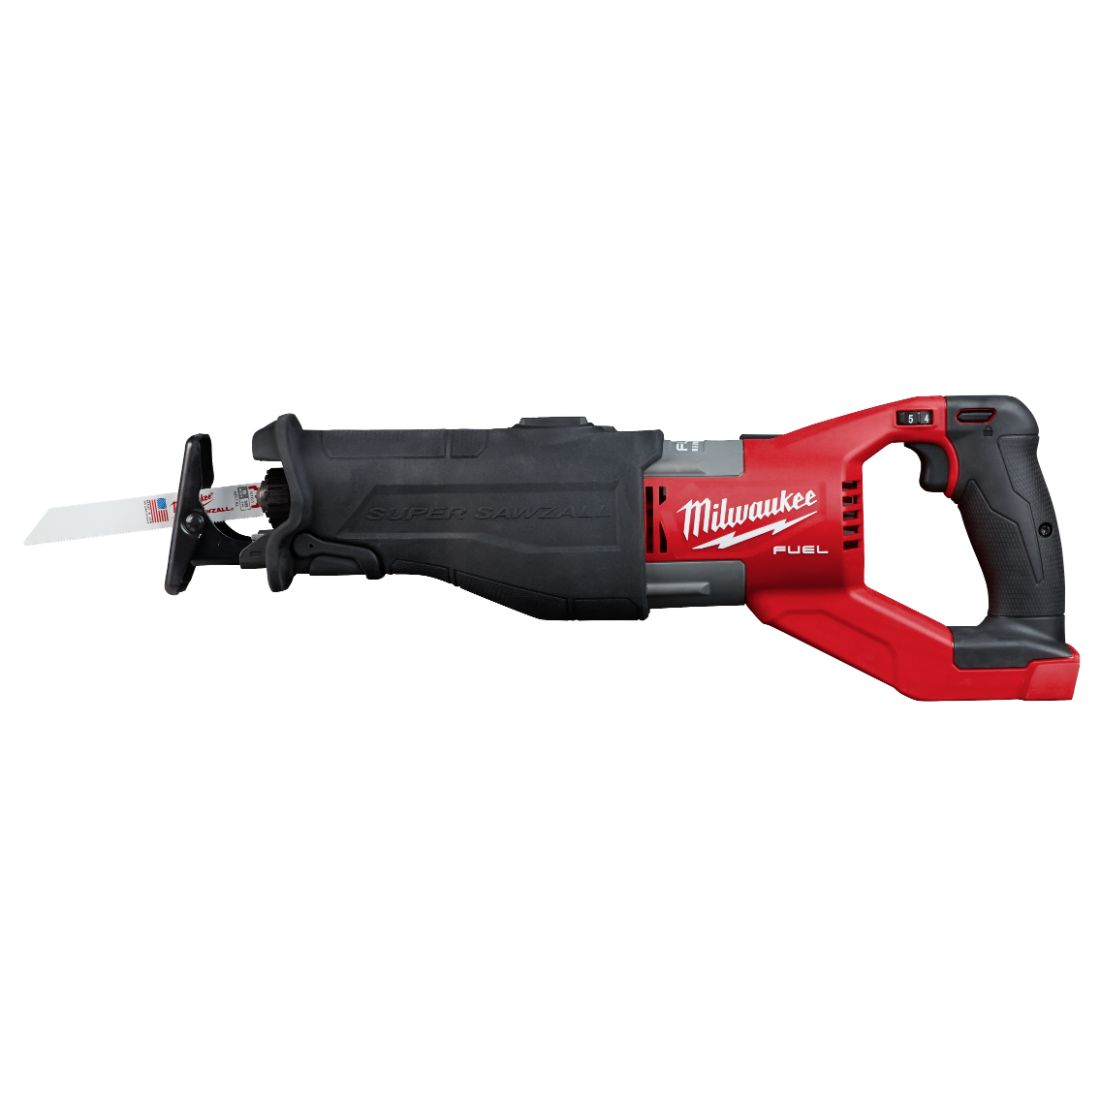 M18 FUEL Cordless Reciprocating Saw (Tool Only)